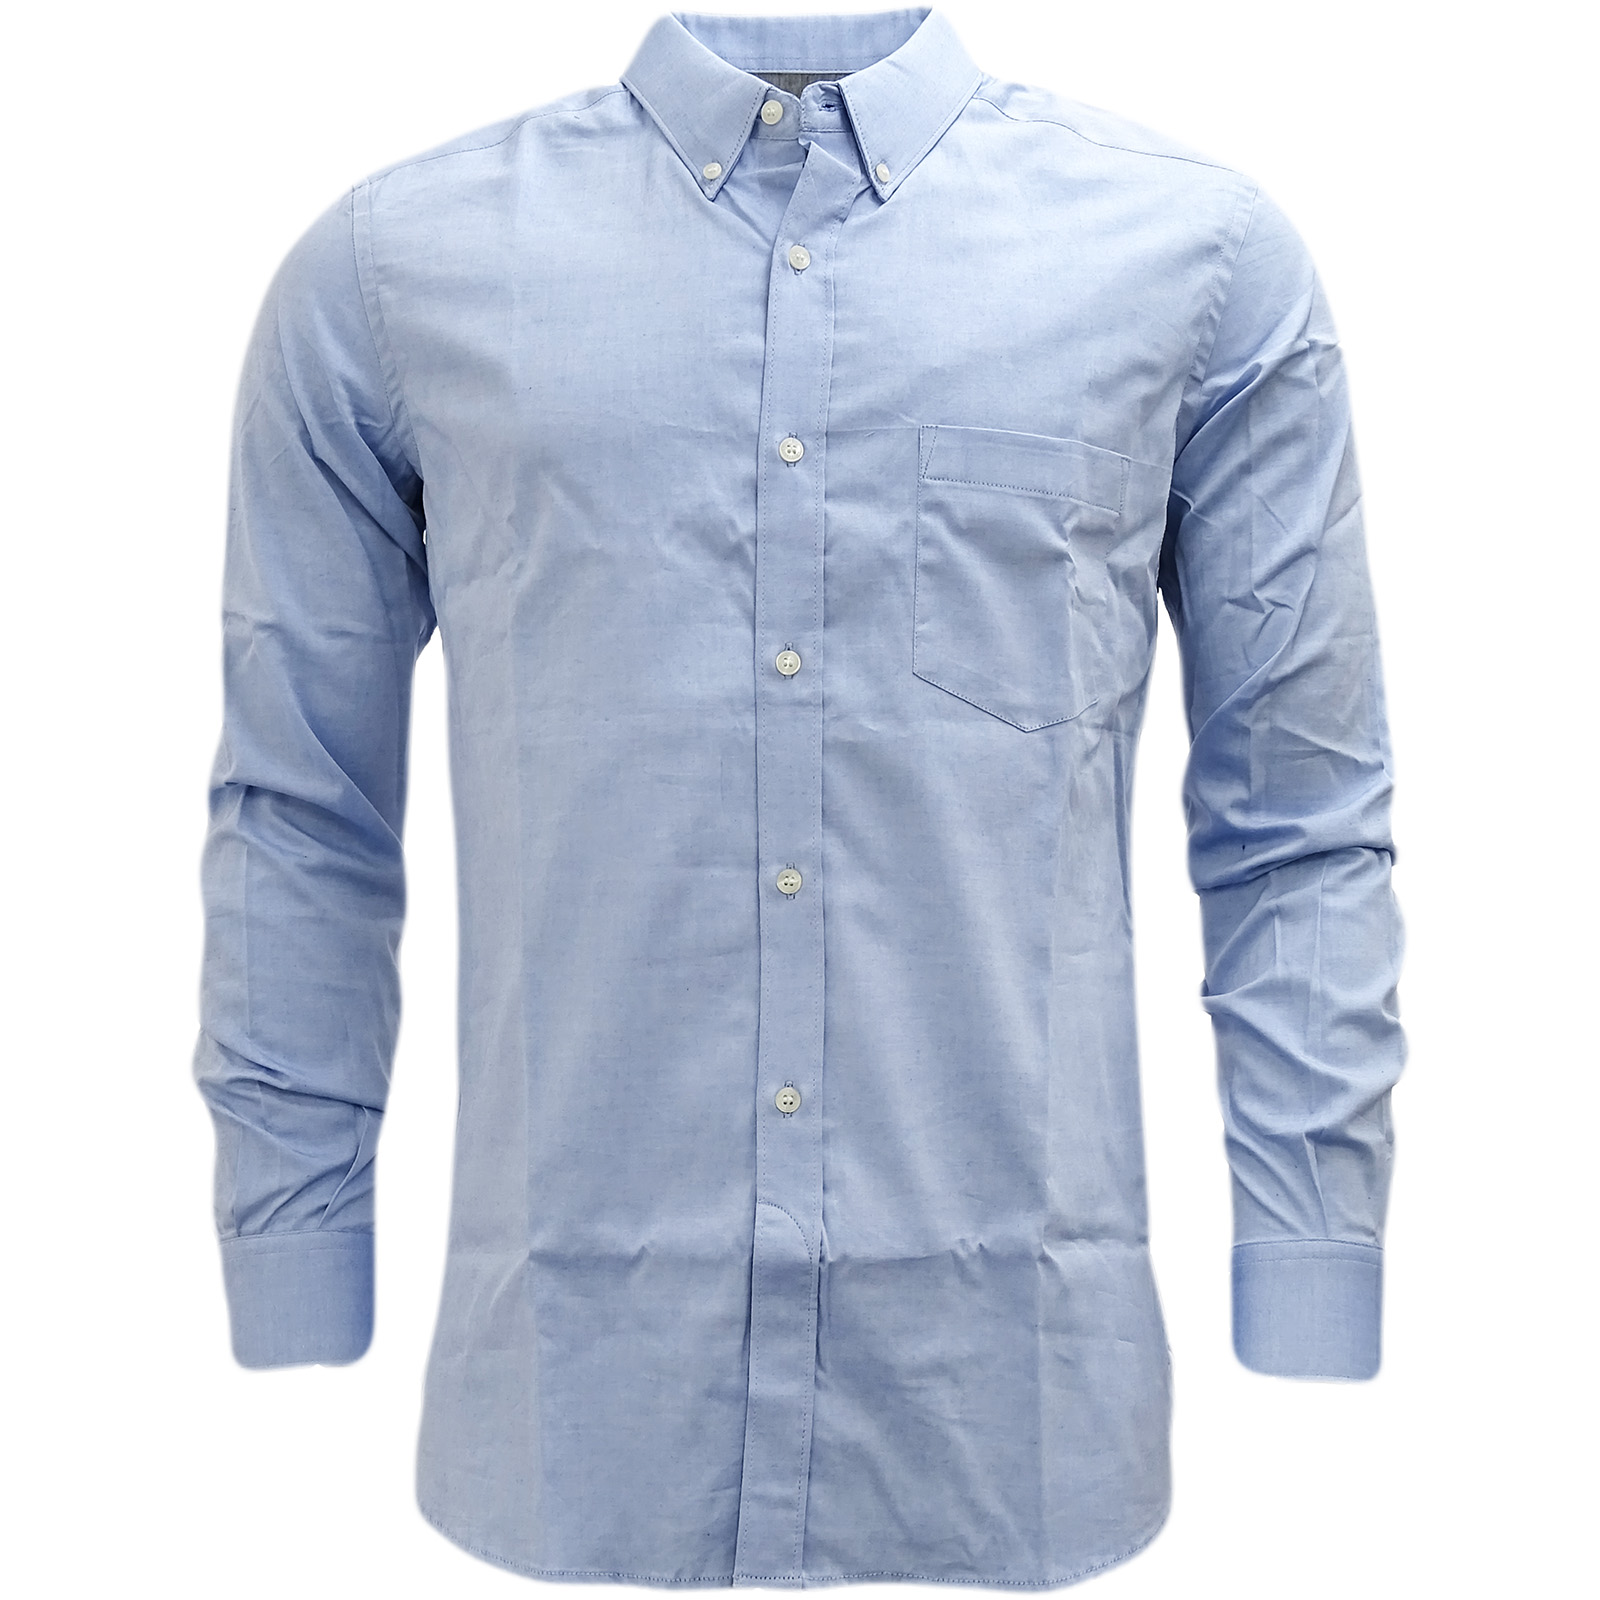 Mens Shirts French Connection Plain Shirt Long Sleeve Smart Casual M L XL